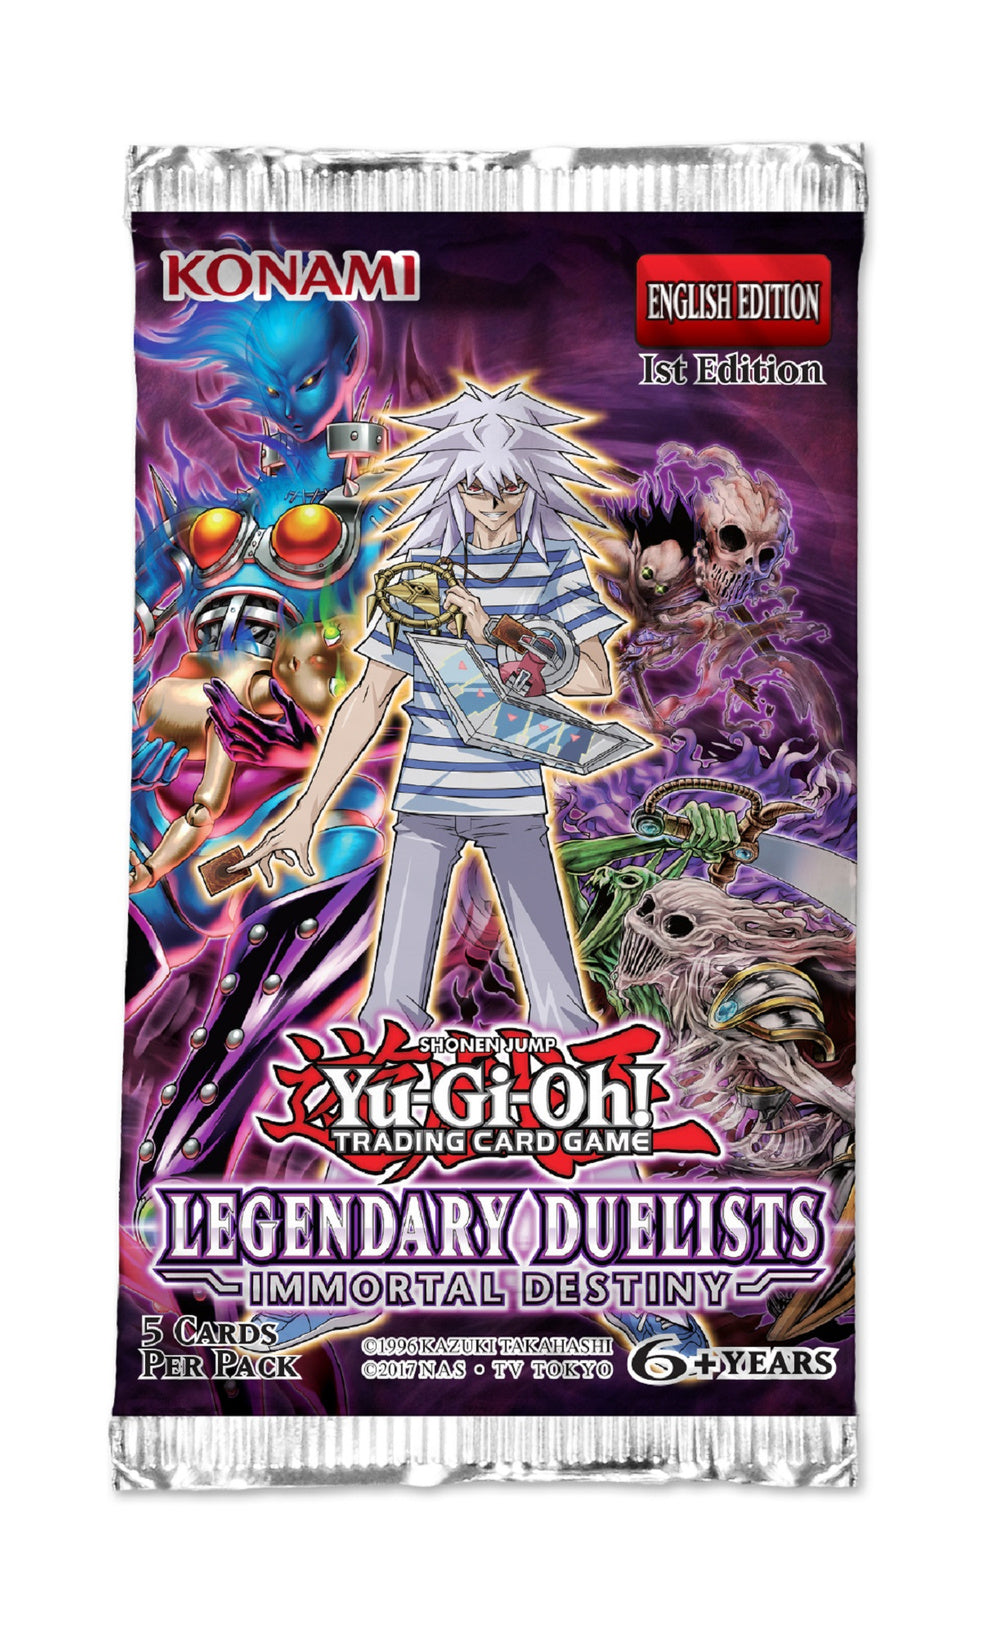 Yu-Gi-Oh! Legendary Duelists: Immortal Destiny Booster Pack | Card Merchant NZ